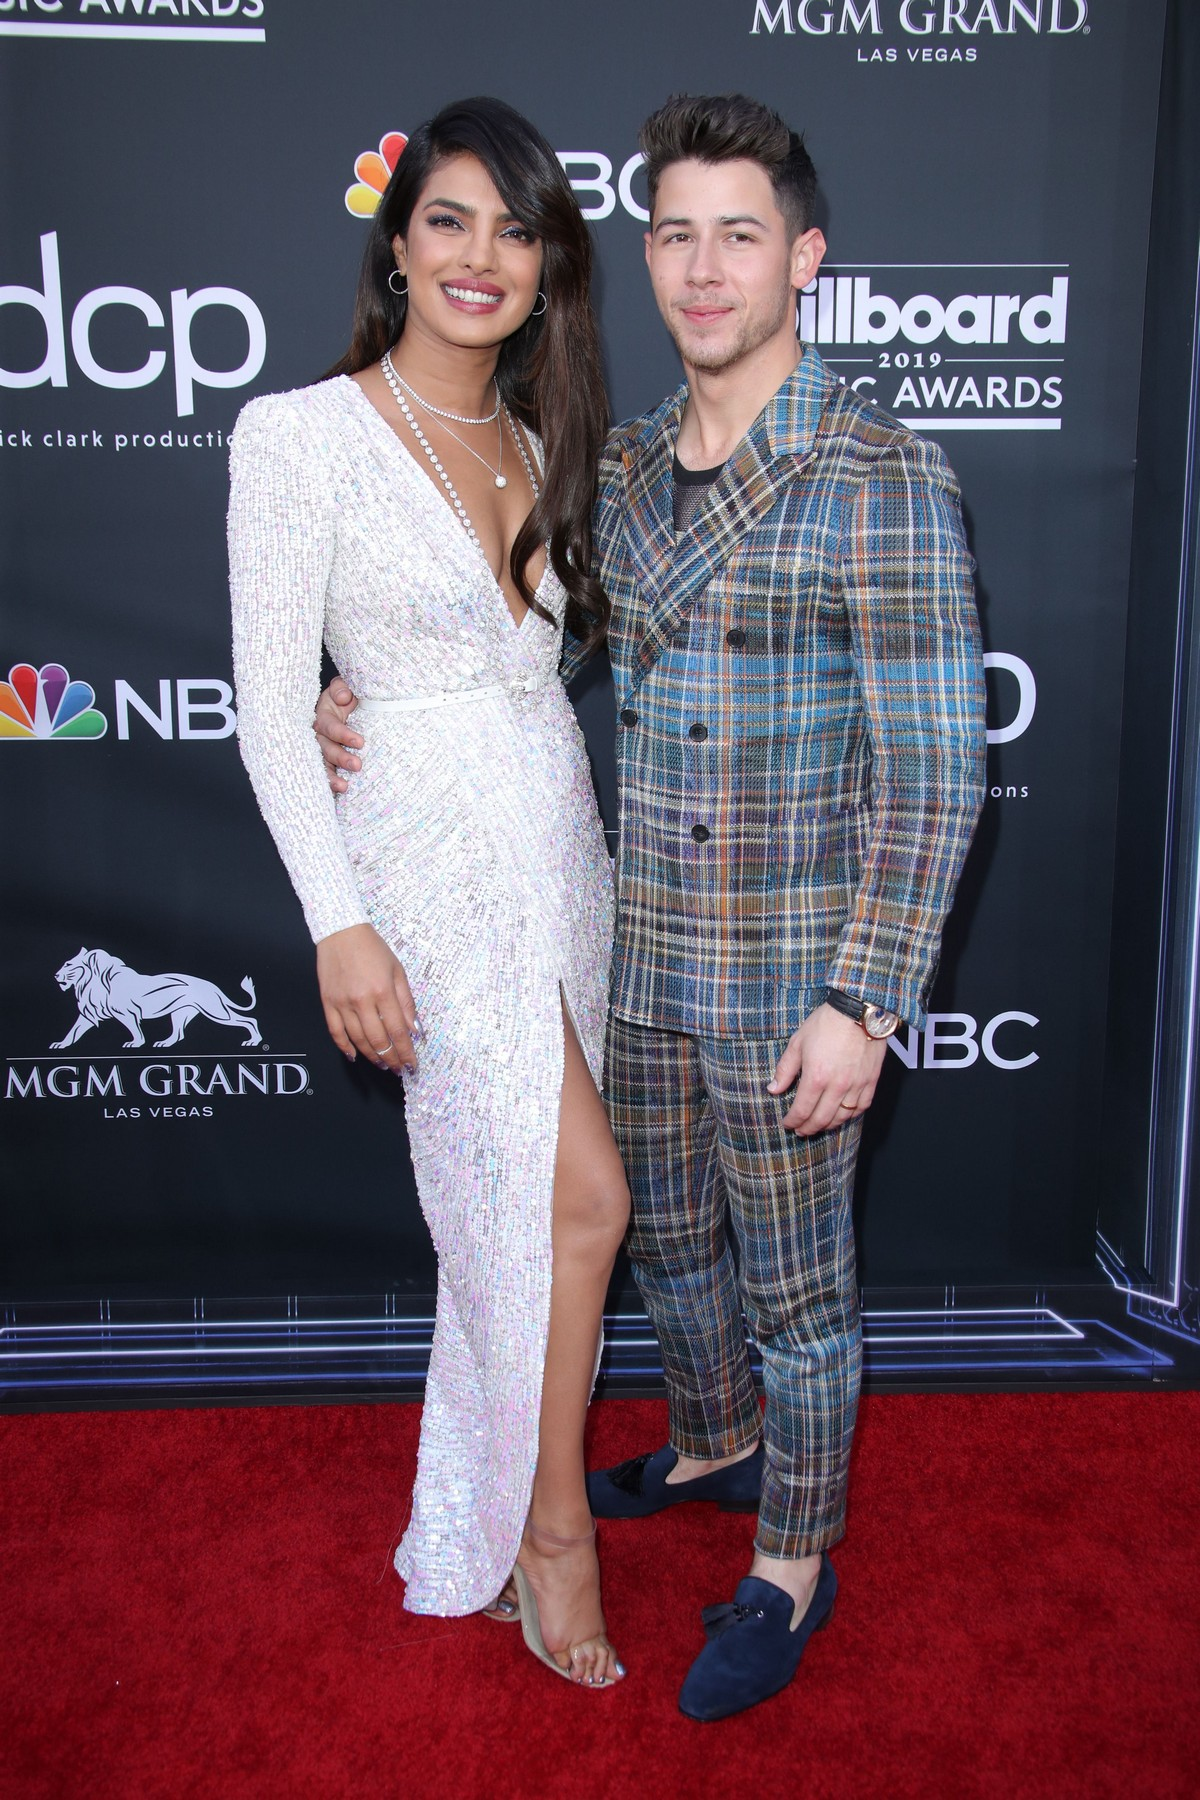 Priyanka Chopra and Nick Jonas at Billboard Music Awards in Las Vegas 2019/05/01 6